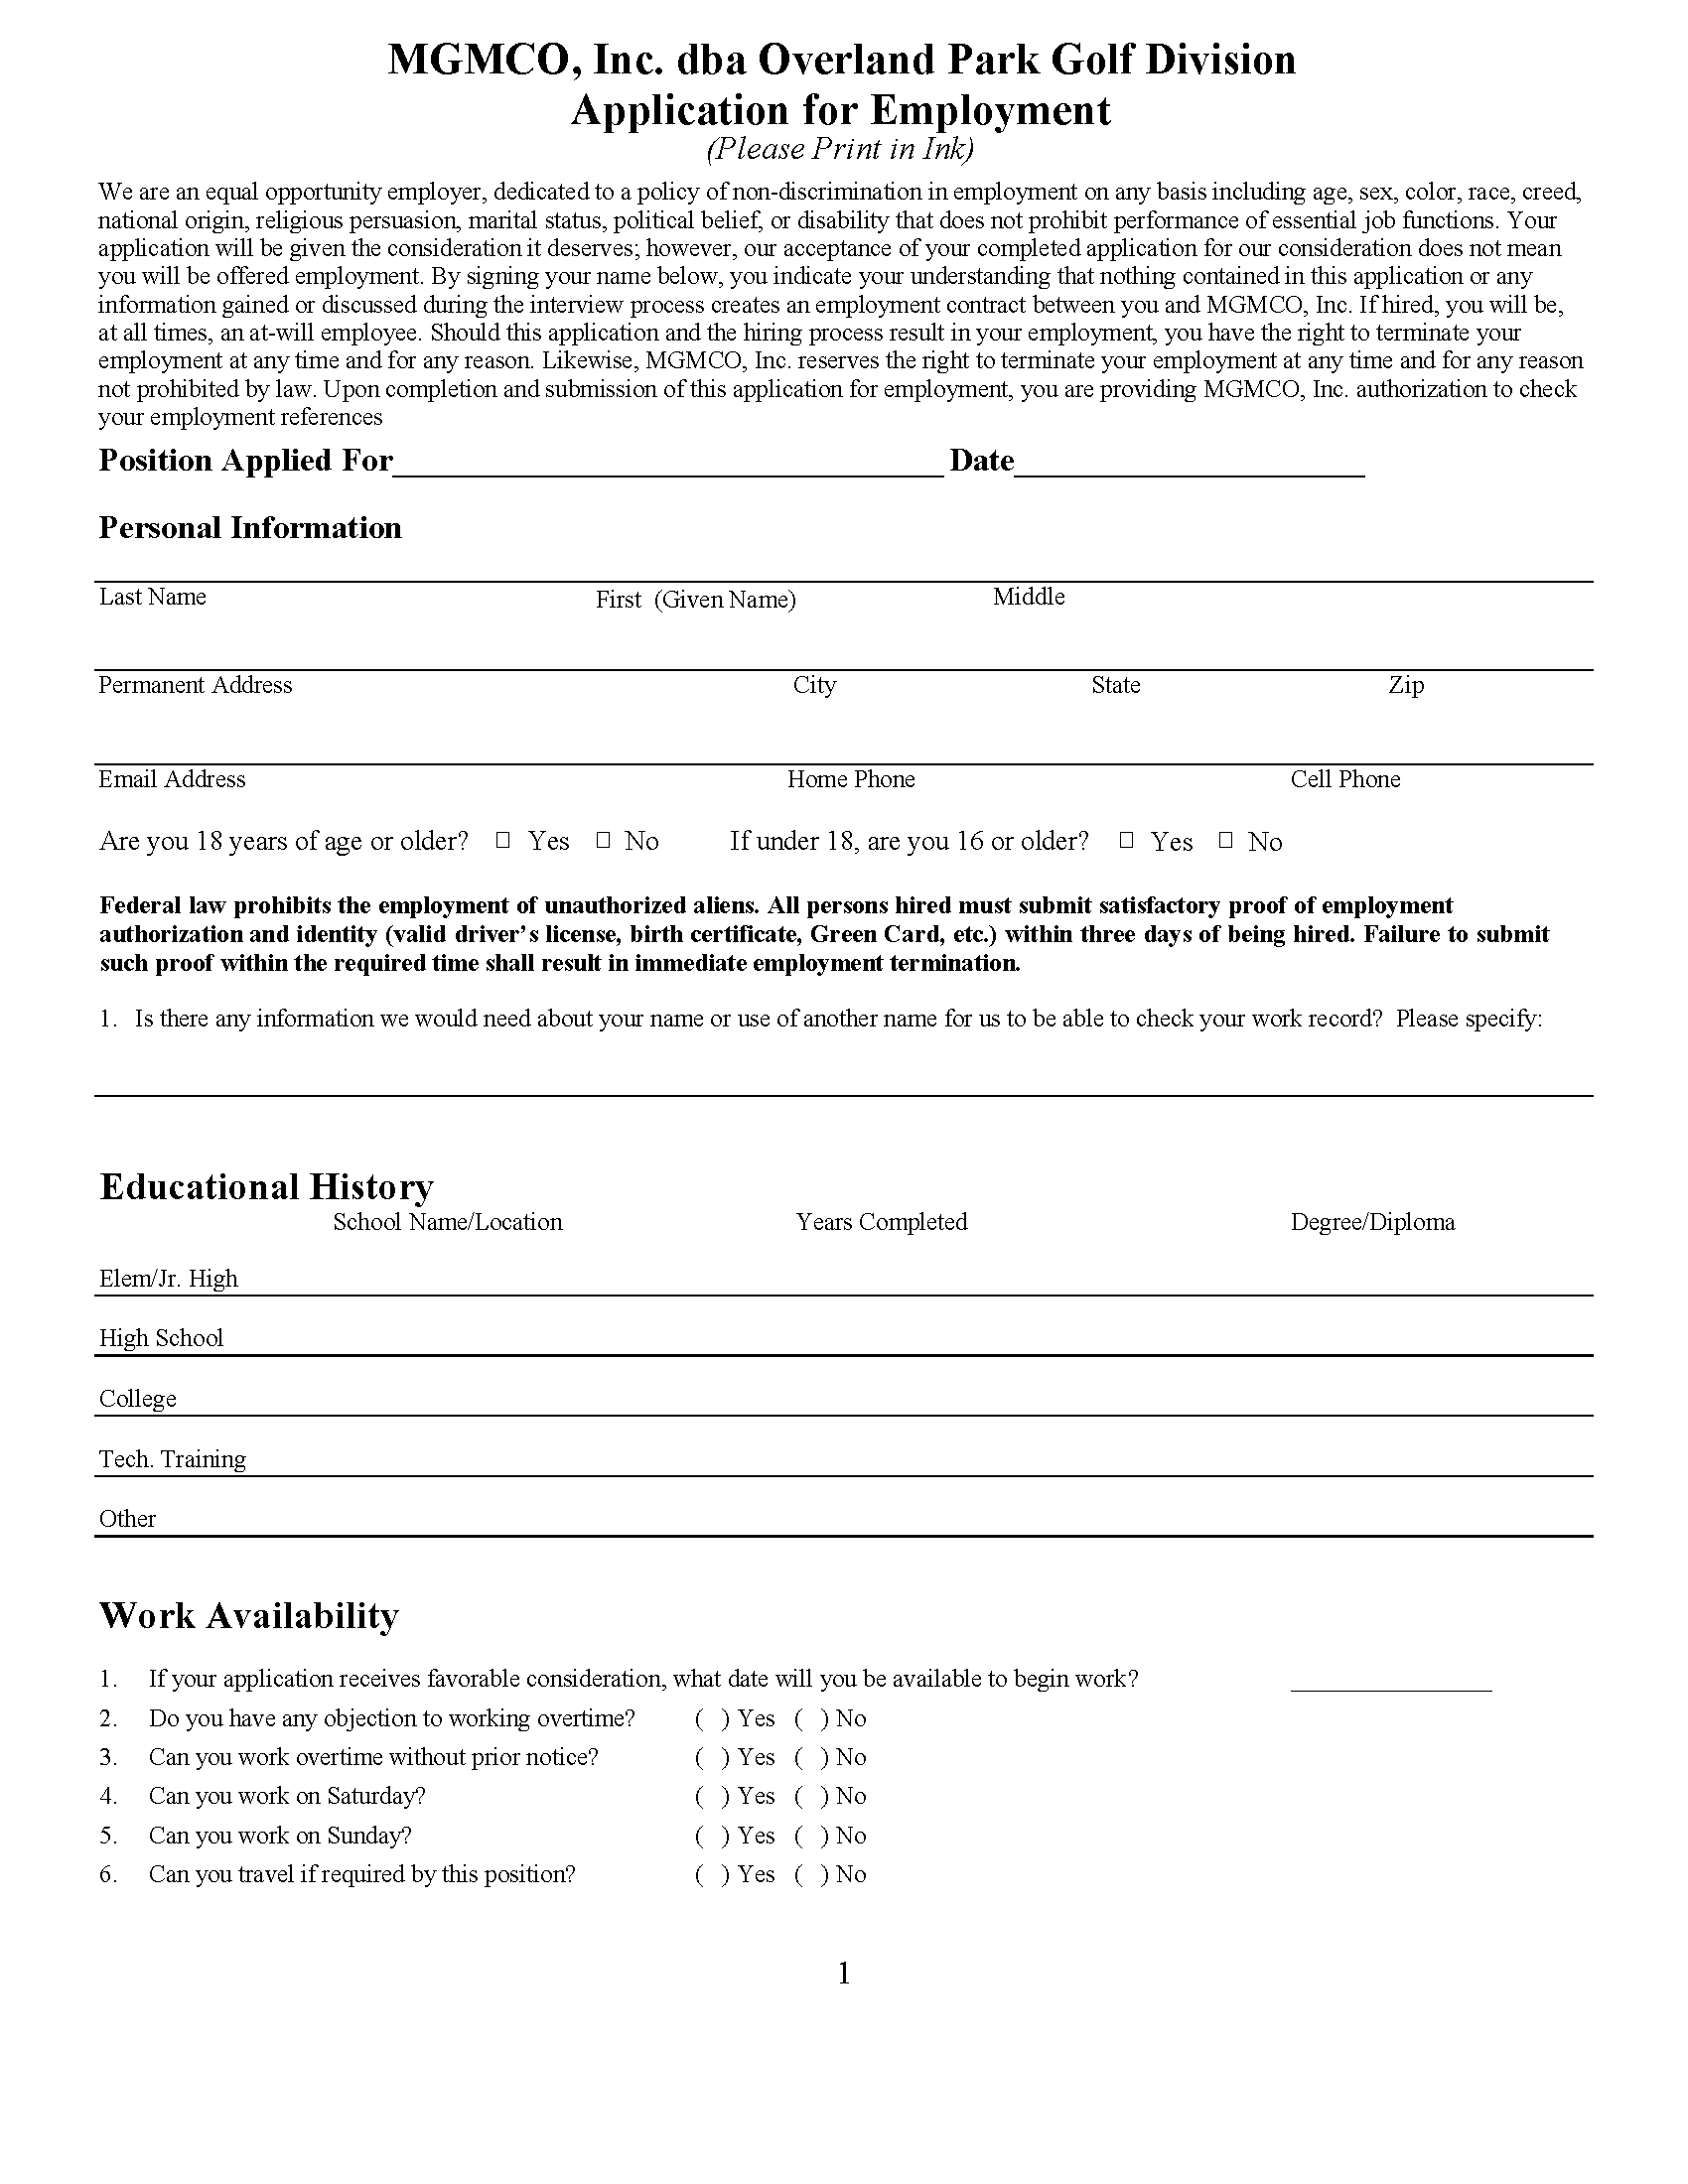 2020 Application For Employment UPDATED 071420 2 Page 1